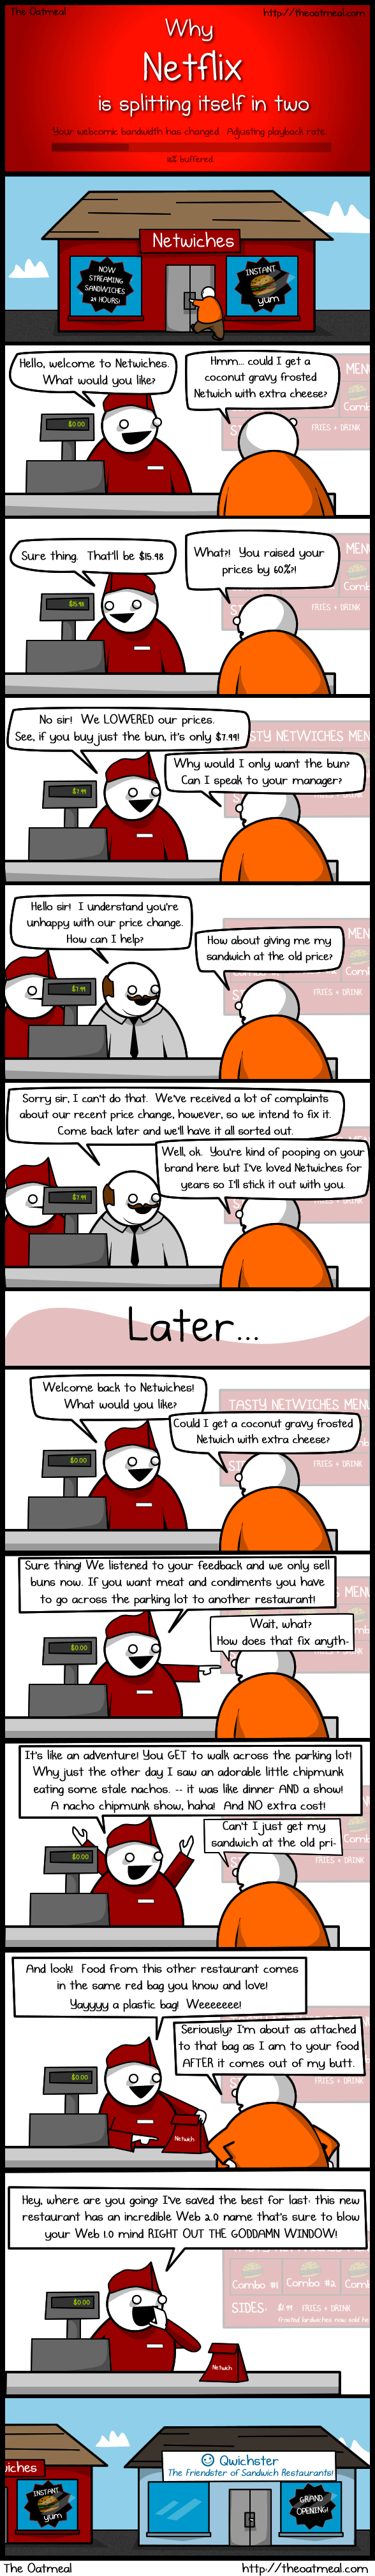 Why Netflix is Splitting Itself In Two: A Cartoon by The Oatmeal